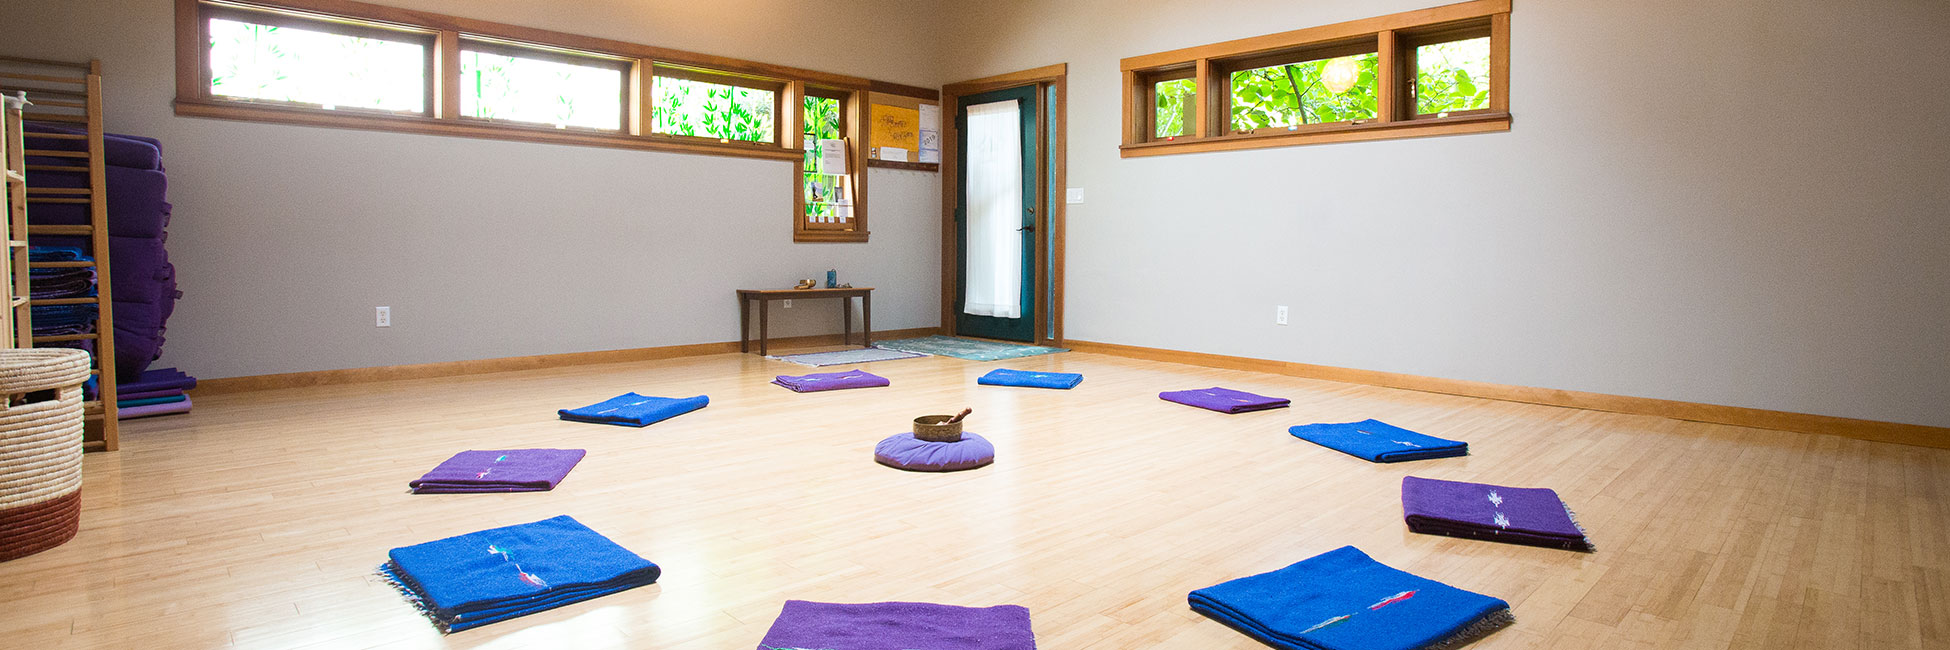 Sound Yoga West Seattle Yoga Studio The Teachings Of Krisnamacharya And Tkv Desikachar